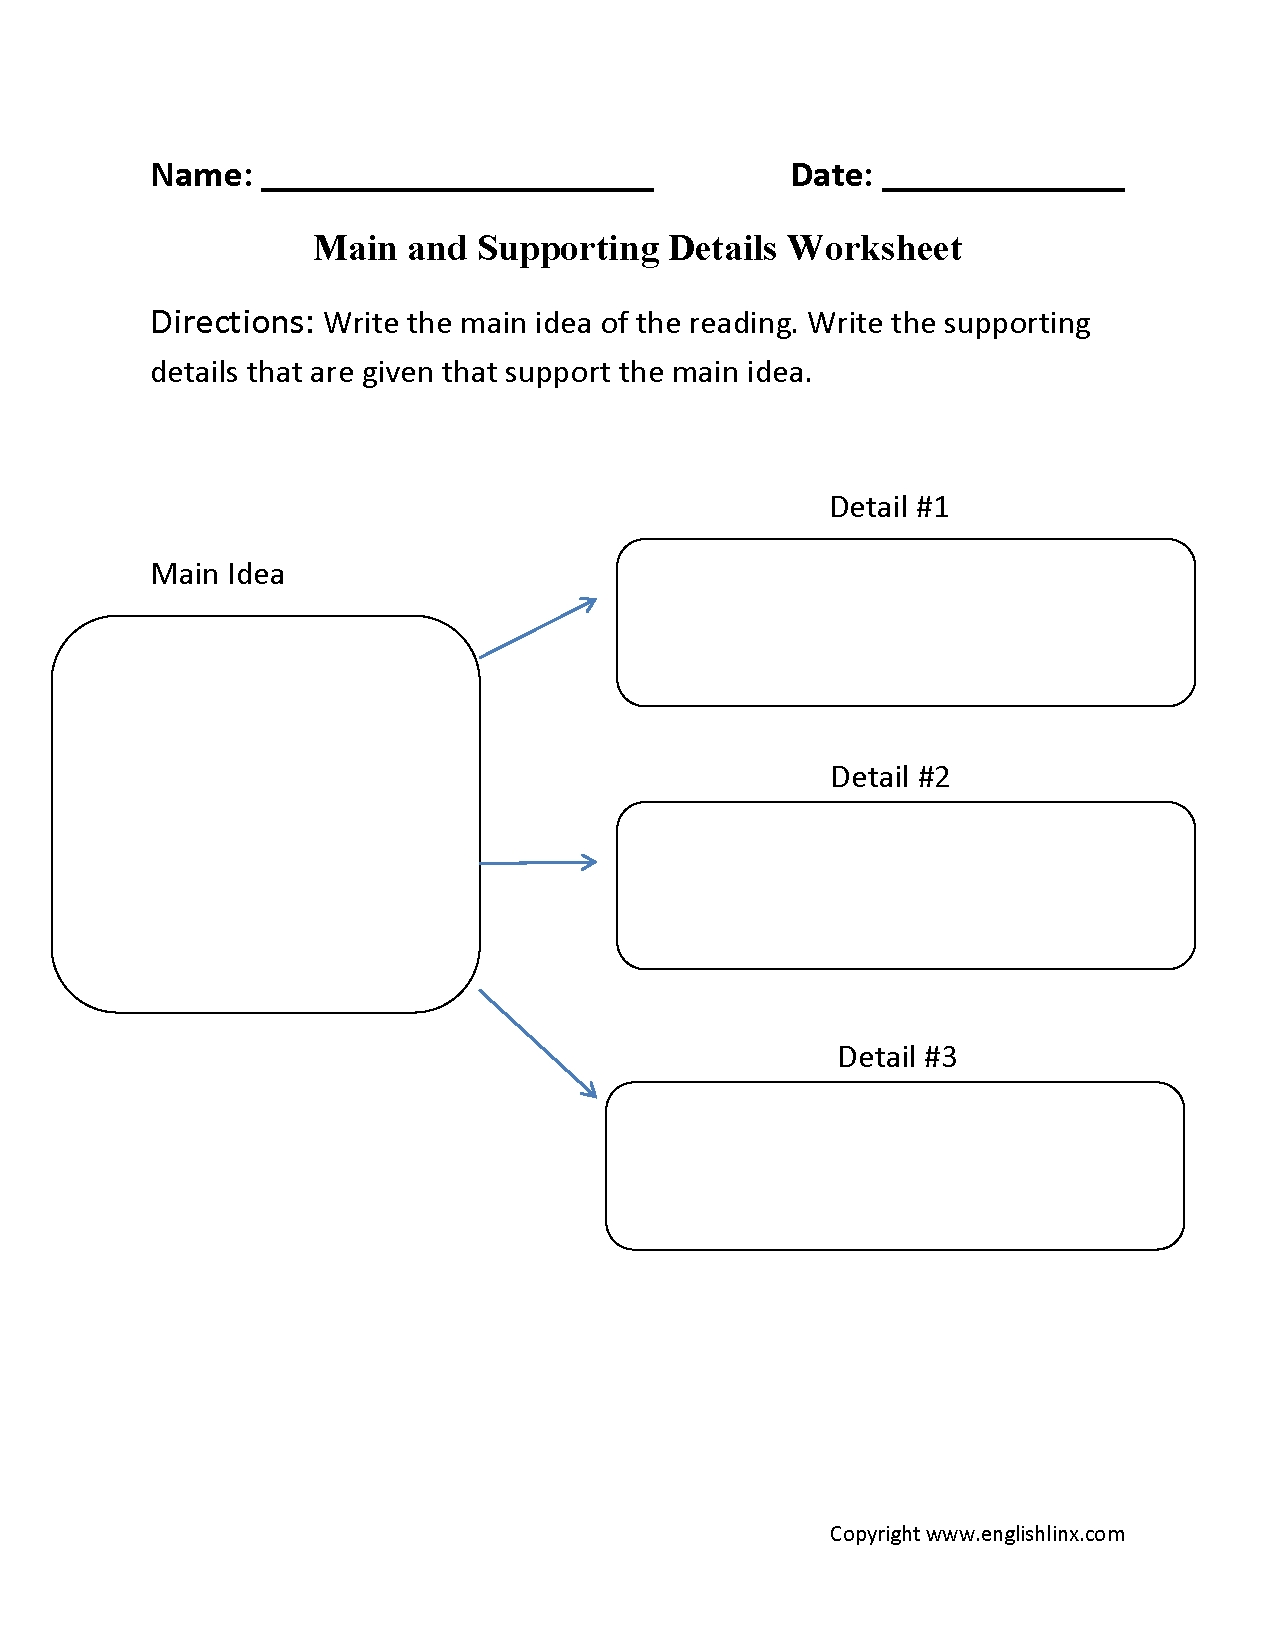 10 Fabulous Main Idea And Supporting Details main idea worksheets main idea and supporting details worksheet 2 2021